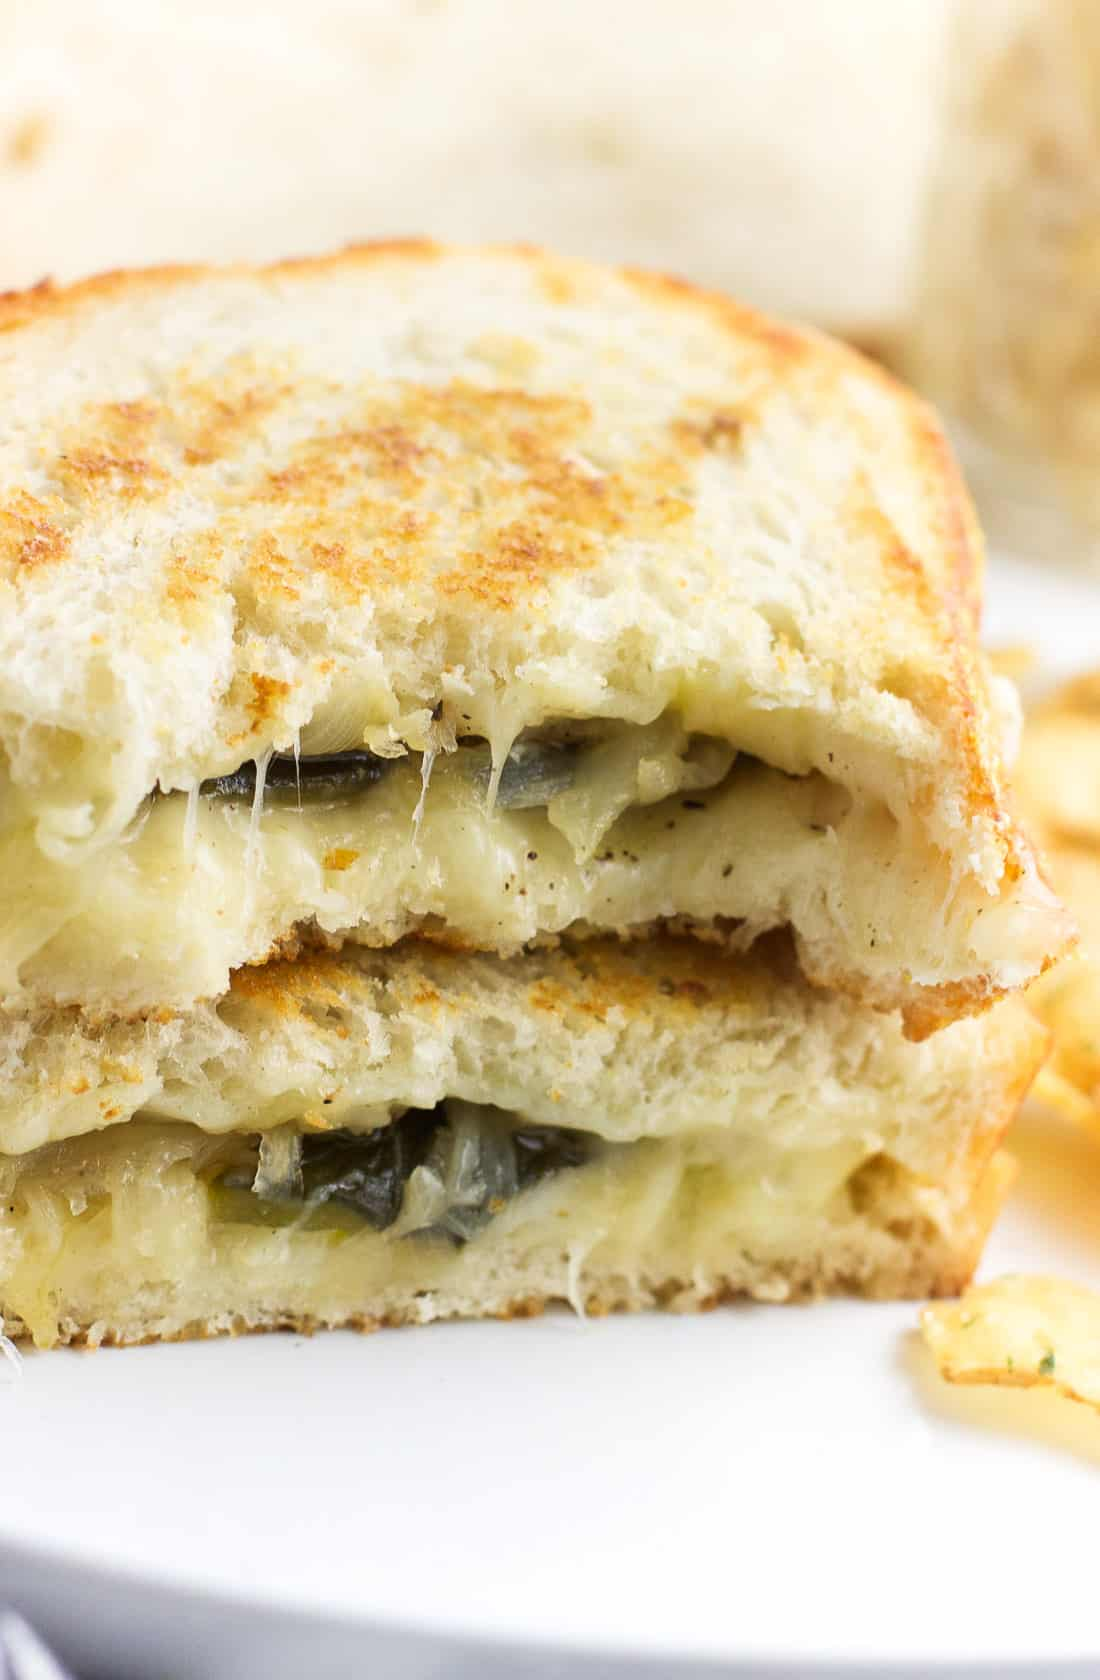 This sourdough havarti grilled cheese is filled with strips of roasted poblano peppers and caramelized onions for an ultra satisfying vegetarian grilled cheese sandwich. Easy comfort food perfect for lunch or dinner!